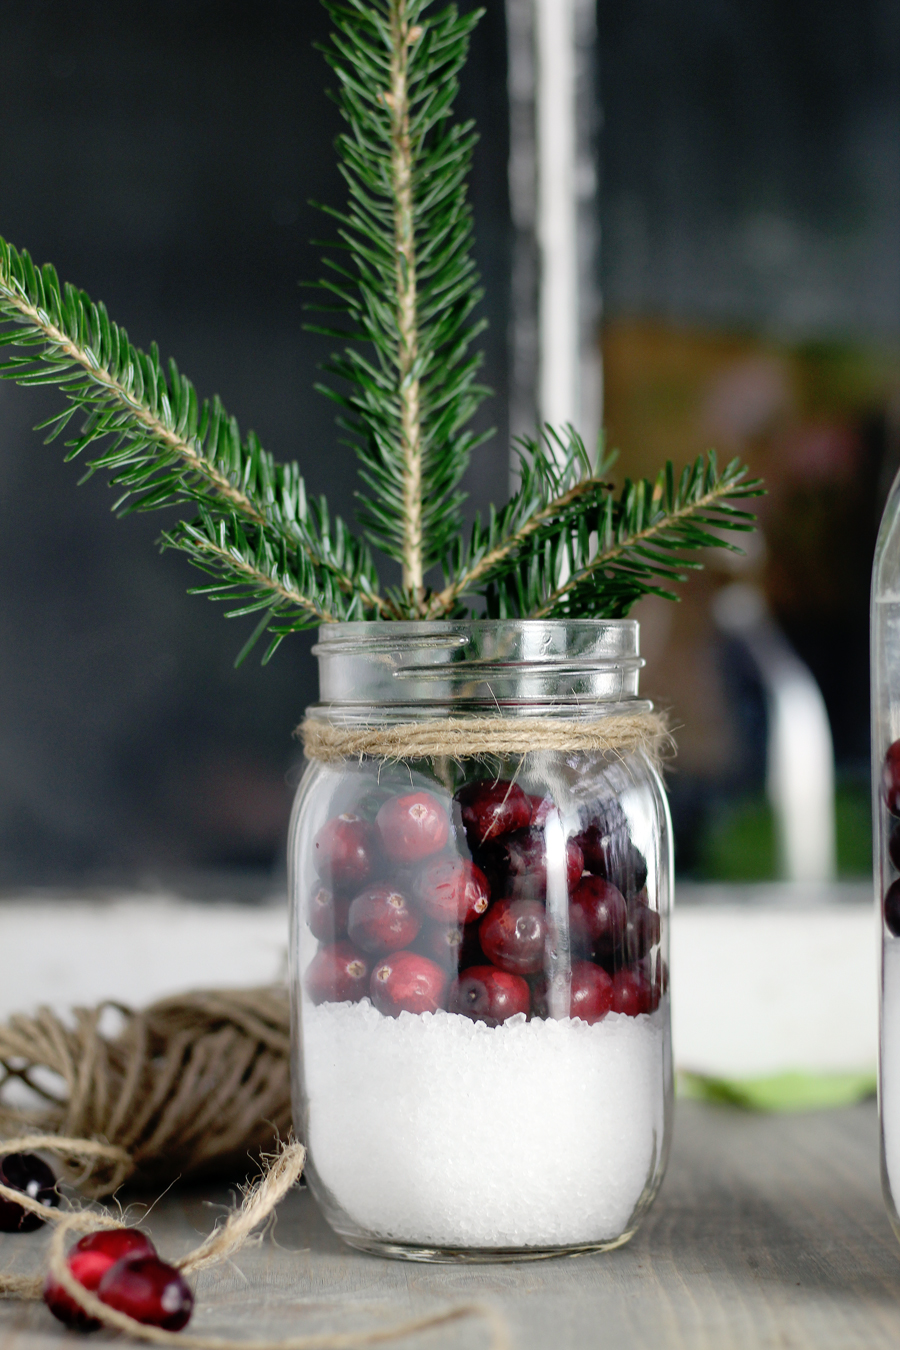 Easy and gorgeous, this rustic Christmas decor is so simple.